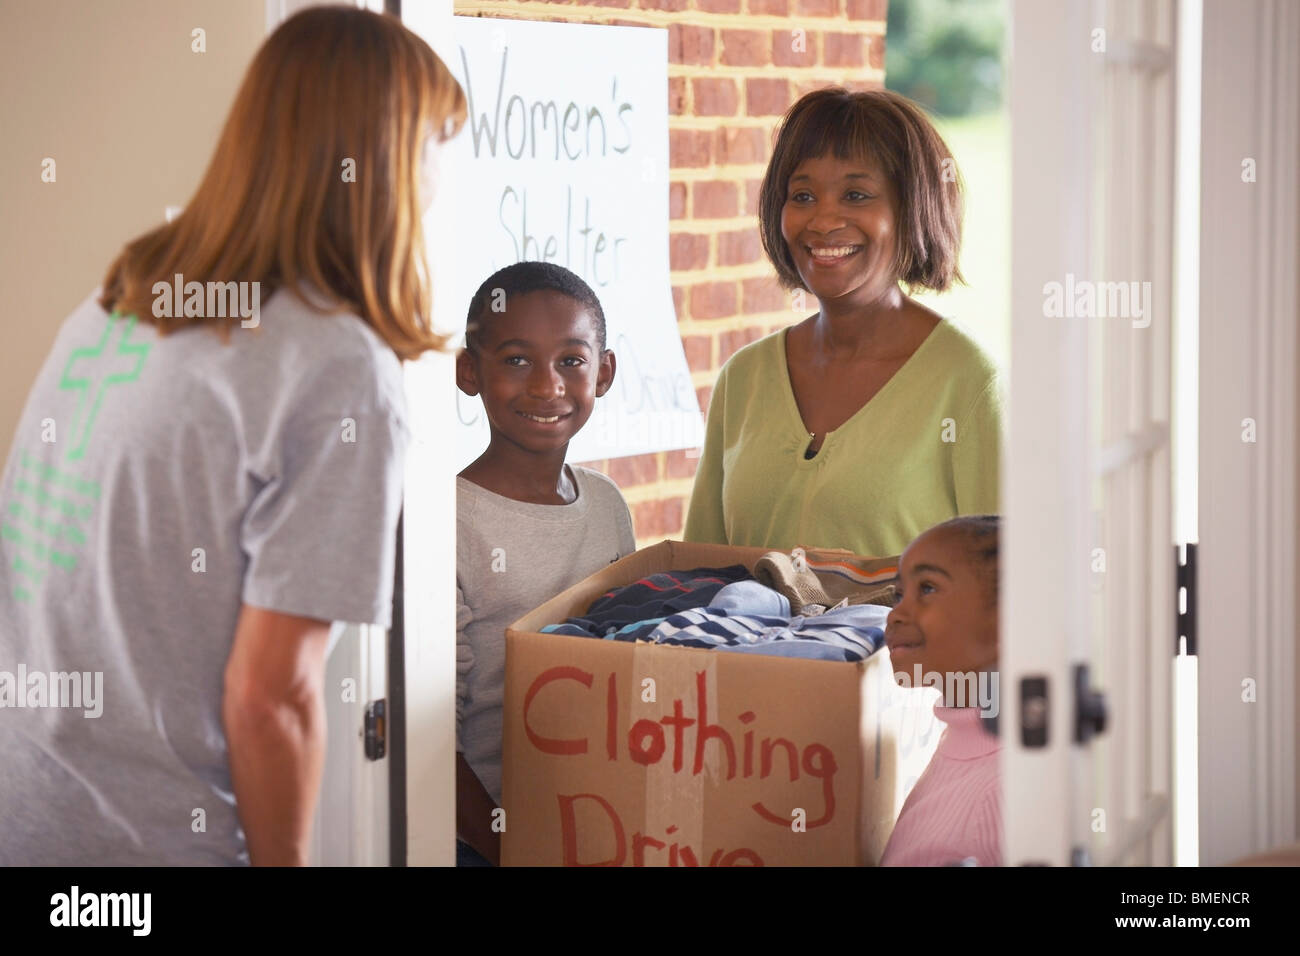 Collecting Clothes For A Clothing Drive - Stock Image